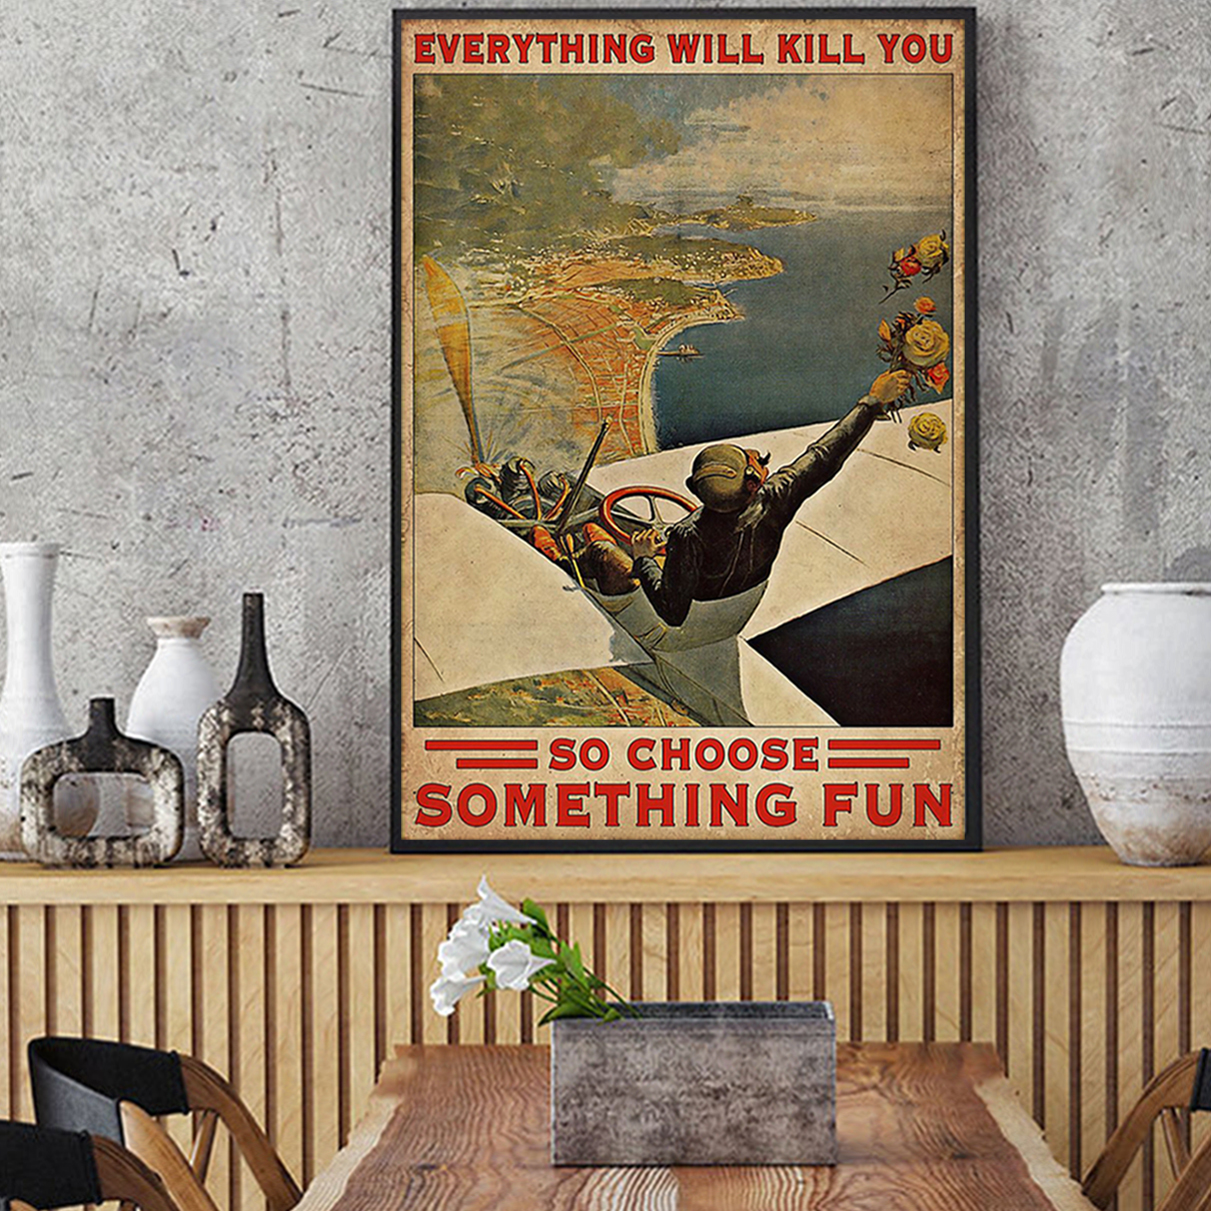 Everything will kill you so choose something fun pilot poster A1